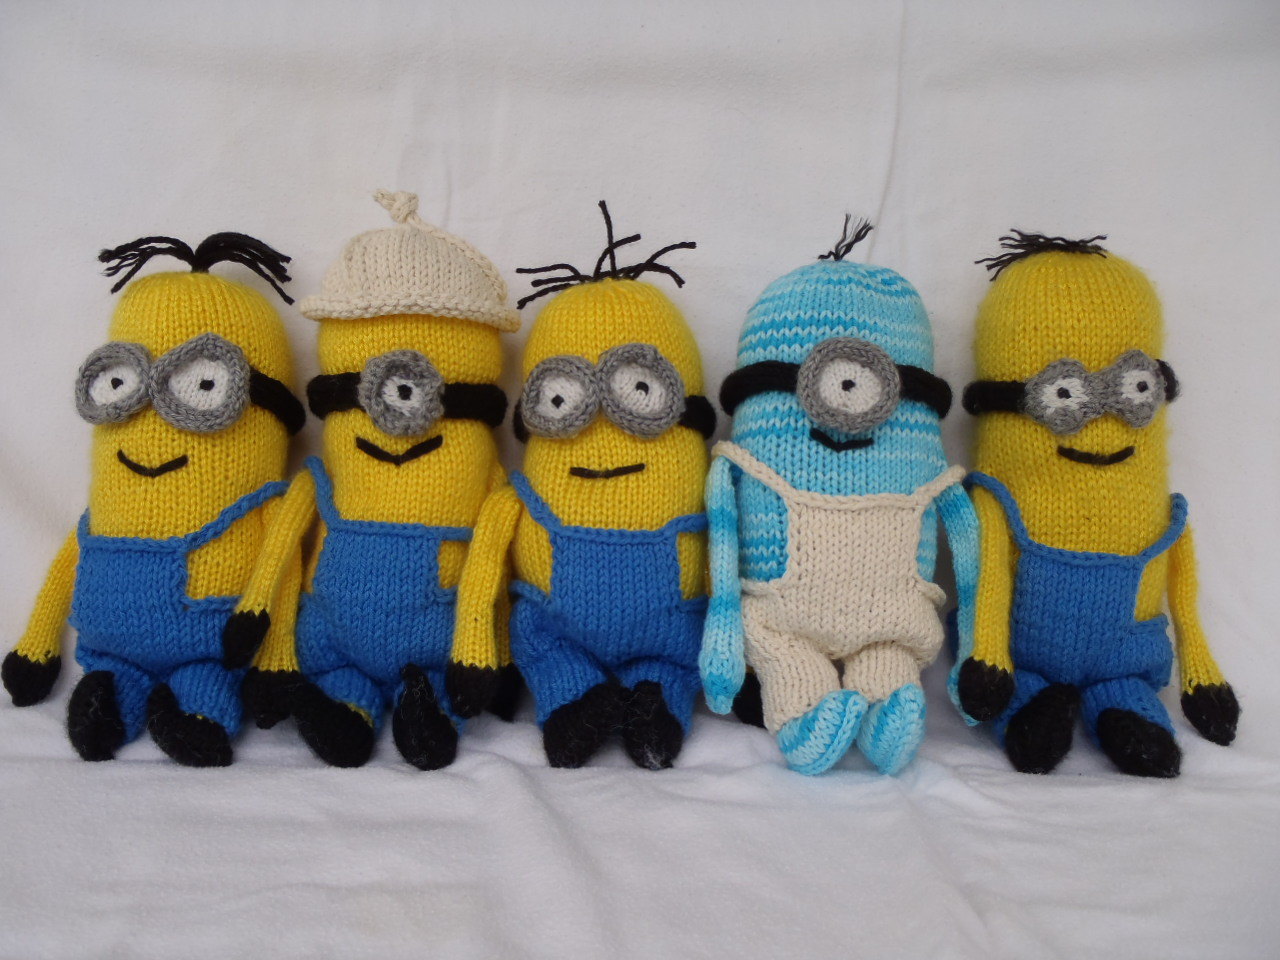 Stanas critters etc knitting pattern for minions part 2 knitting pattern for minions part 2 bankloansurffo Image collections